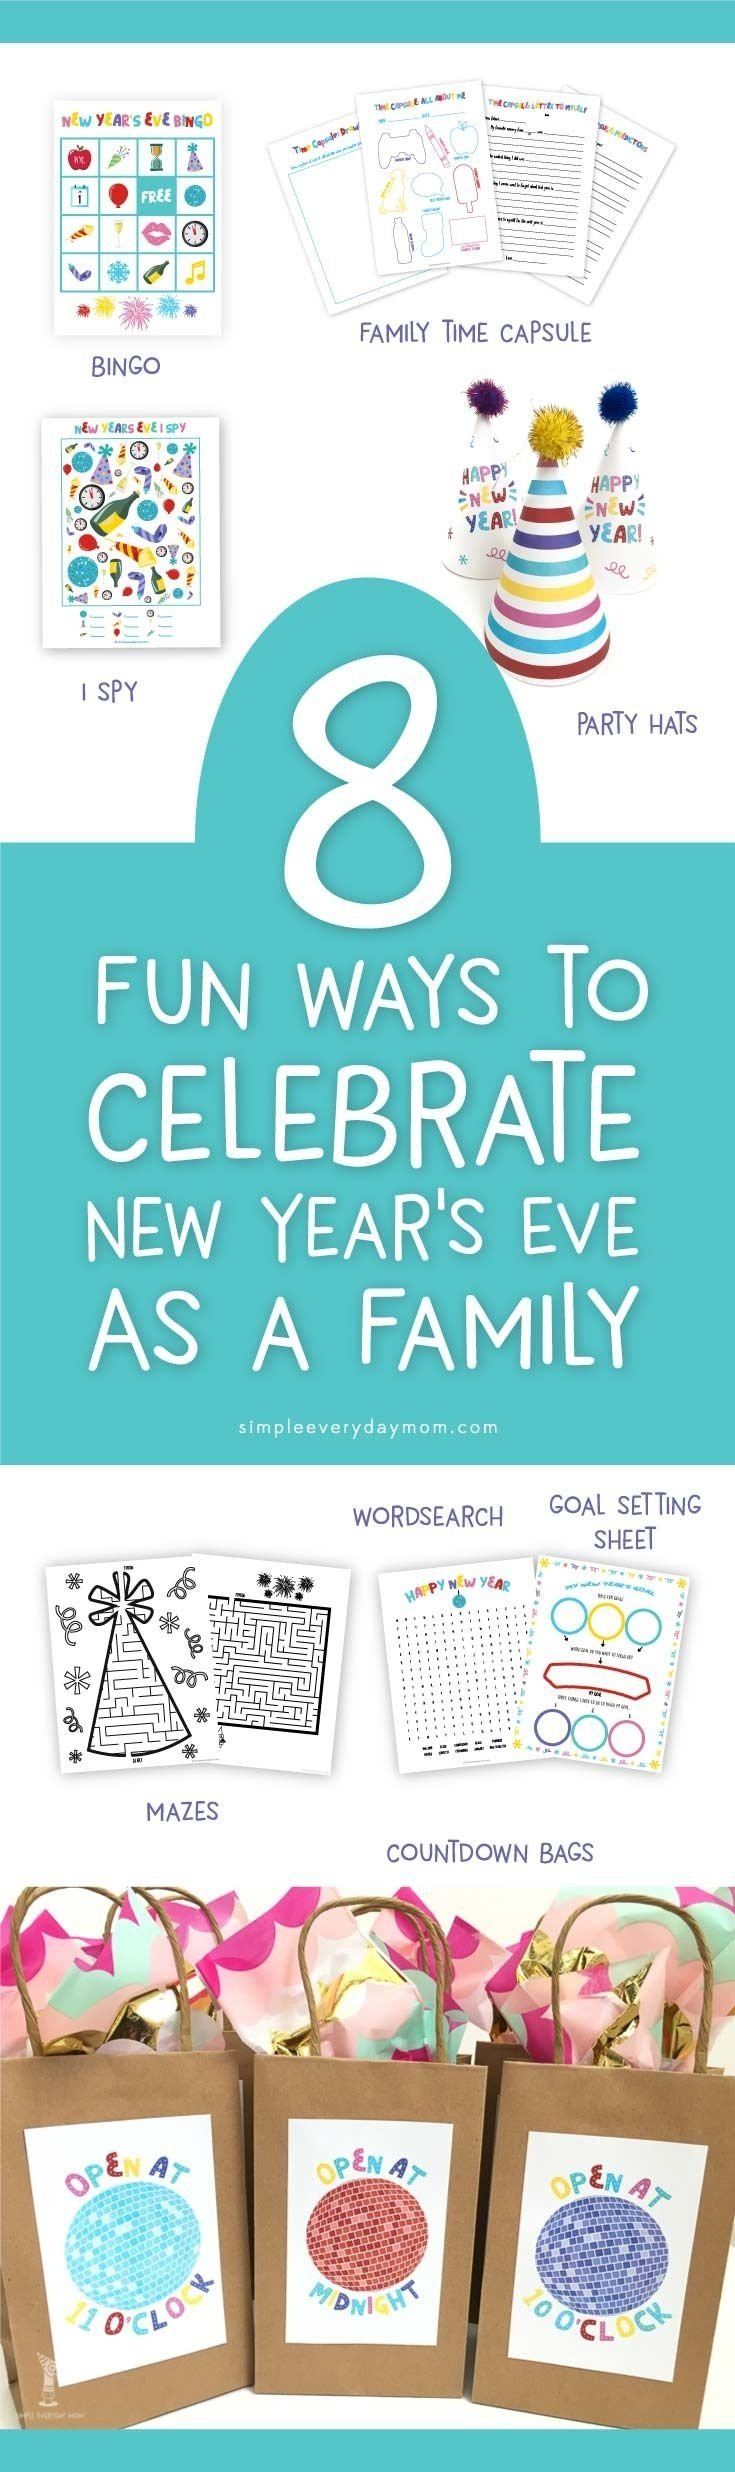 10 Stunning Family Ideas For New Years Eve 137 best new years for kids images on pinterest new years eve 2020